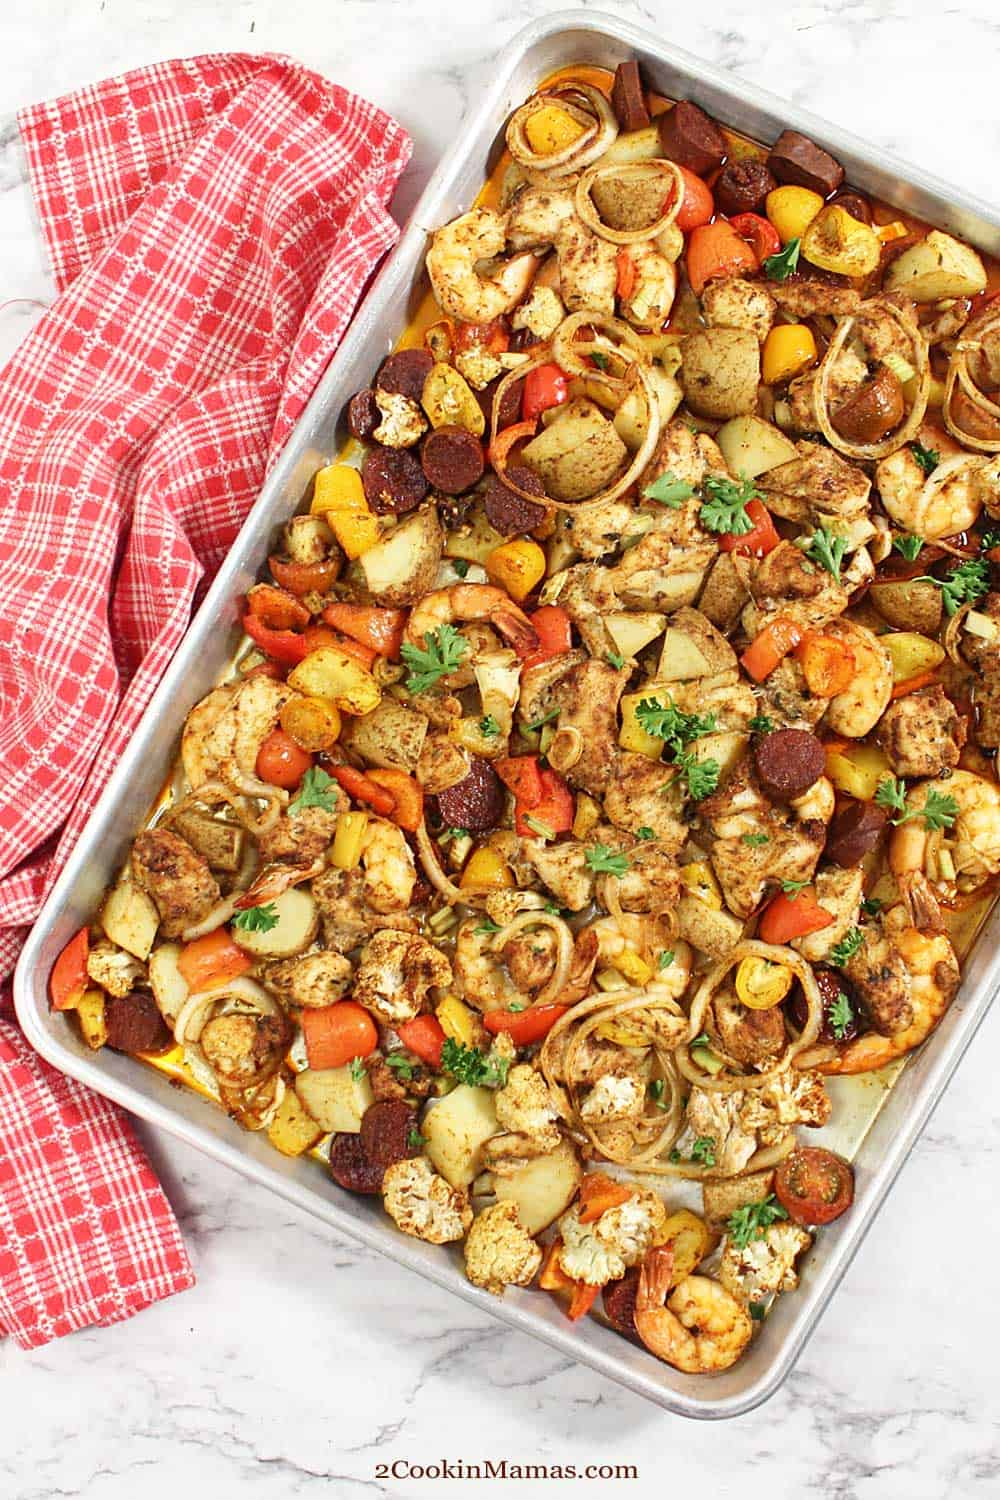 Creole Mixed Grill Dinner baked tall | 2 Cookin Mamas This Creole Mixed Grill Sheet Pan dinner is a simple, hearty meal for any night of the week. Just one baking pan holds a medley of shrimp, chicken, chorizo, potatoes and seasonal vegetables that have been tossed with cajun spices. Easy prep, easy cleanup and you've got one delicious dinner.#dinner #recipe #shrimp #chicken #chorizo #sheetpandinner #easyrecipe #mixedgrill #creole